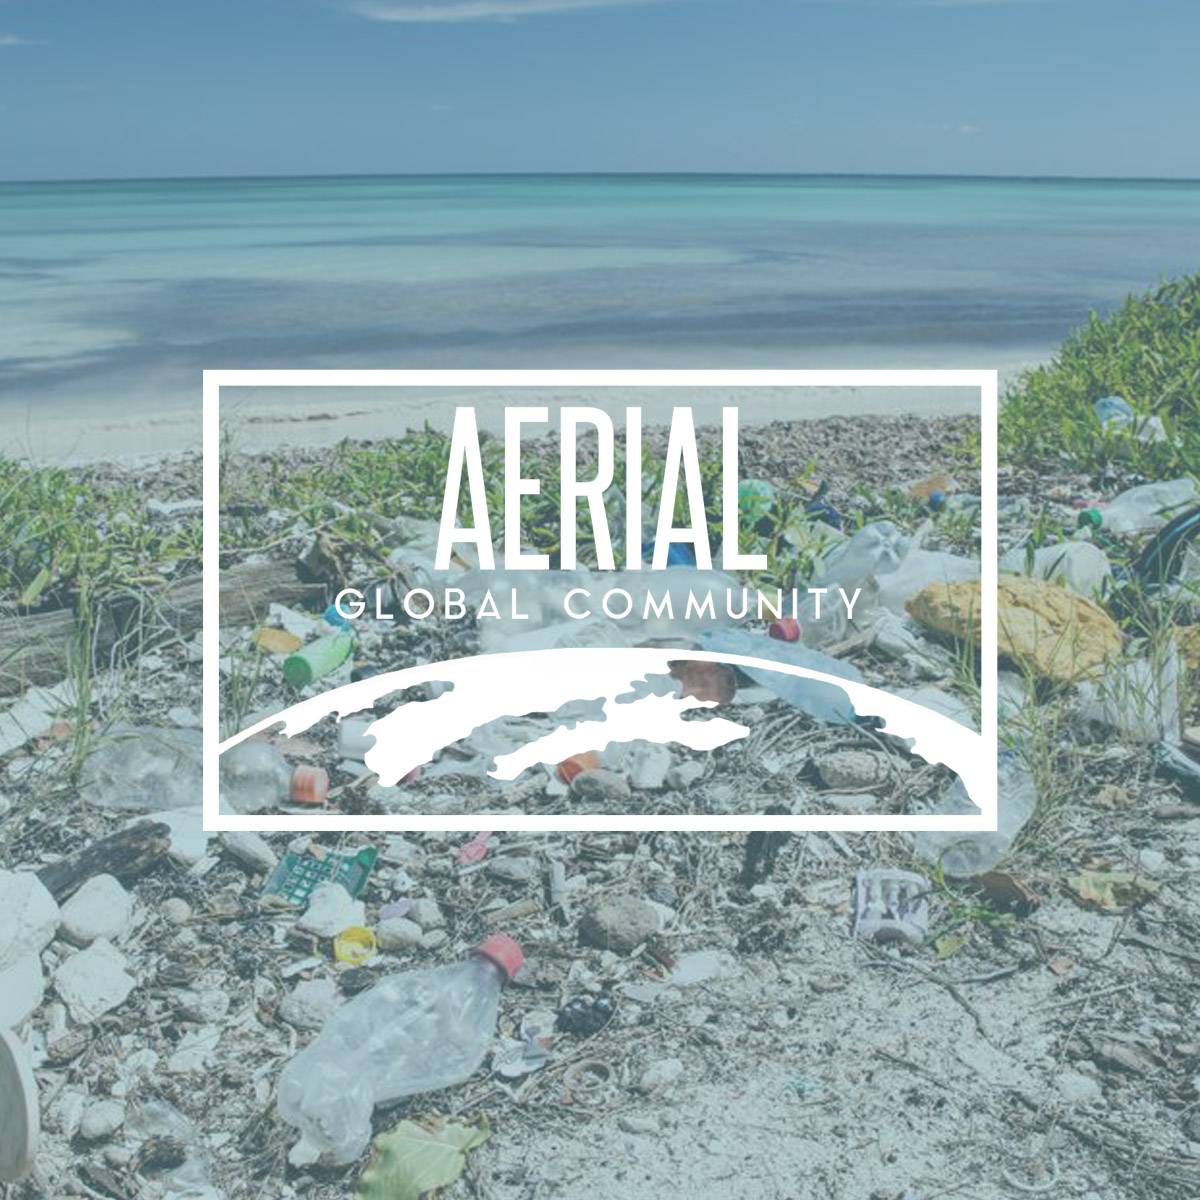 Aerial Global Community hosts half-week trips to various islands for volunteers wishing to remove storm debris and unwanted waste from BVI's beaches. Trash clean up will also consist of sorting recyclables, thus contributing to creating a greener BVI.